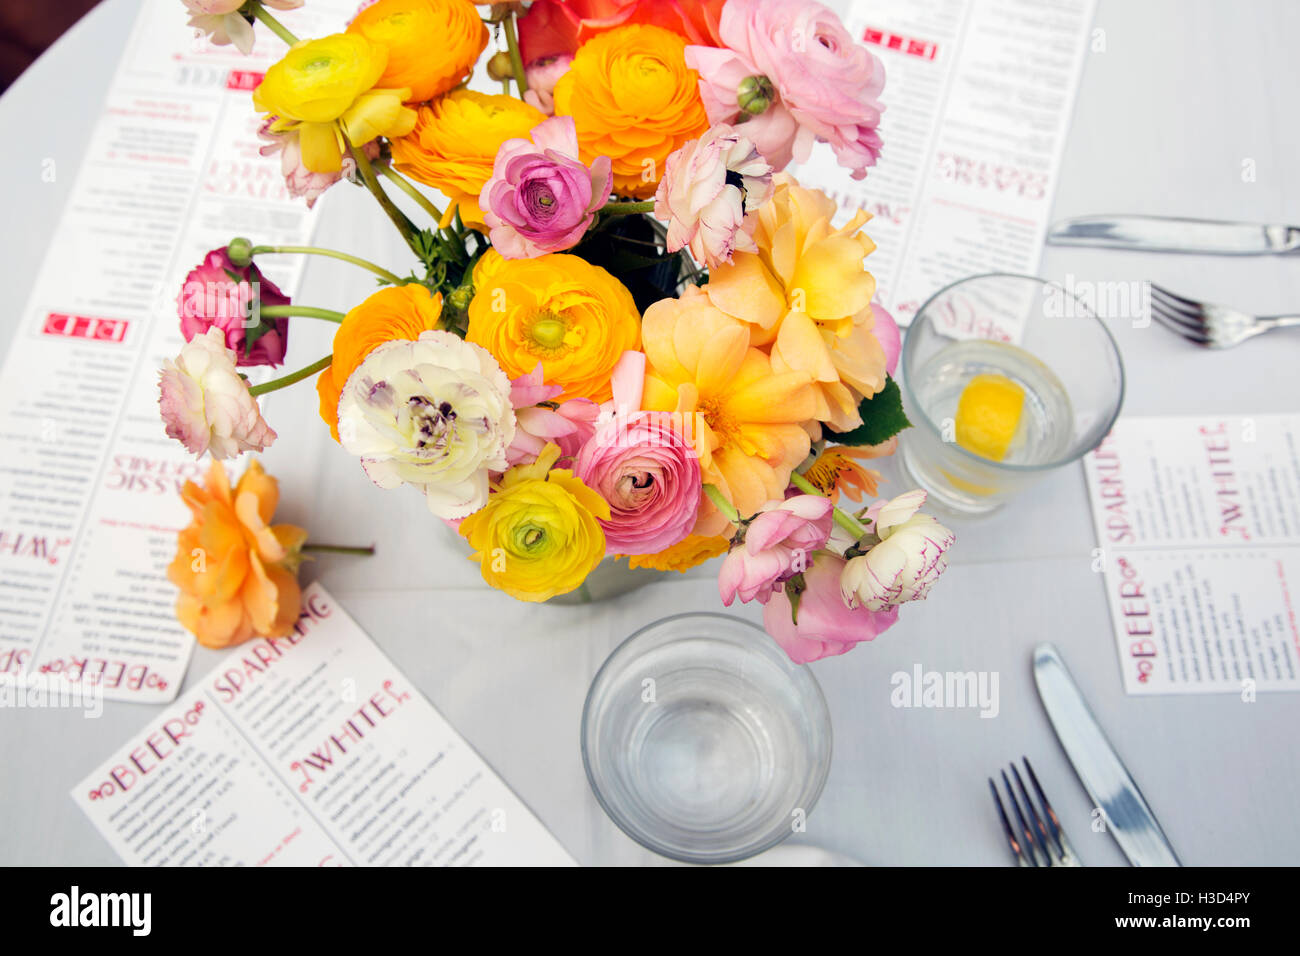 High angle view of flower vase with menus and water glasses on restaurant table - Stock Image